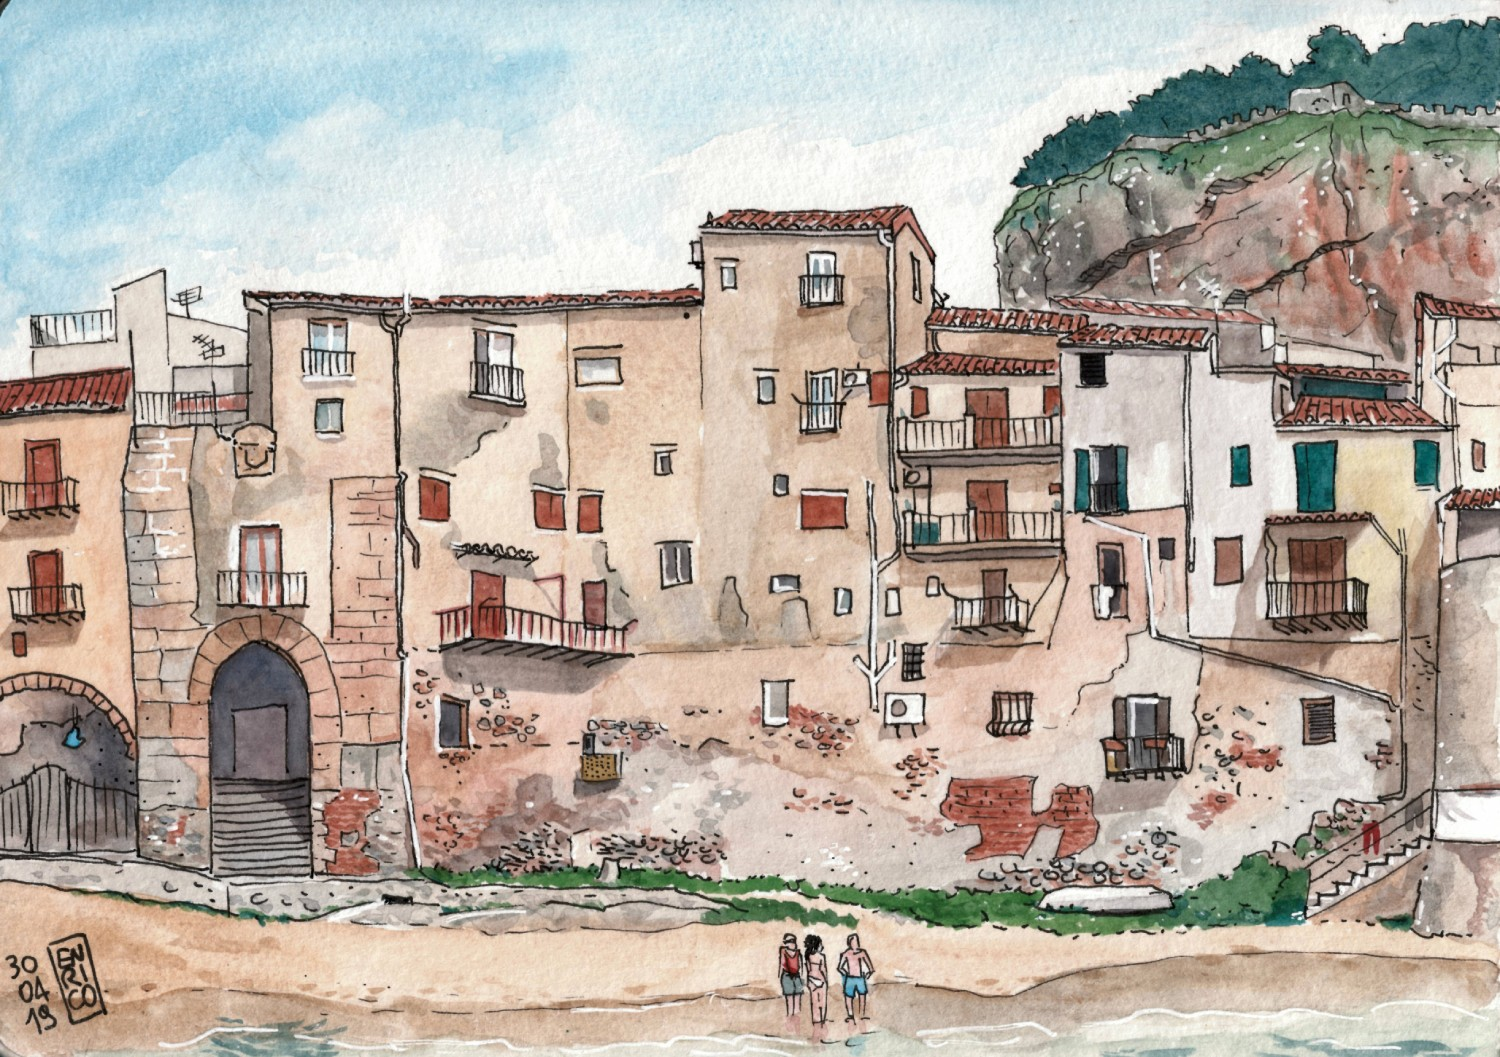 Another view of Cefalù. Houses built inside the old city walls face directly the beach here, it's amazing. You can access the beach walking through the Porta Pescara. Actually, when I sketched there were a lot of people hanging out on the beach, but I ignored them and just left my friends...